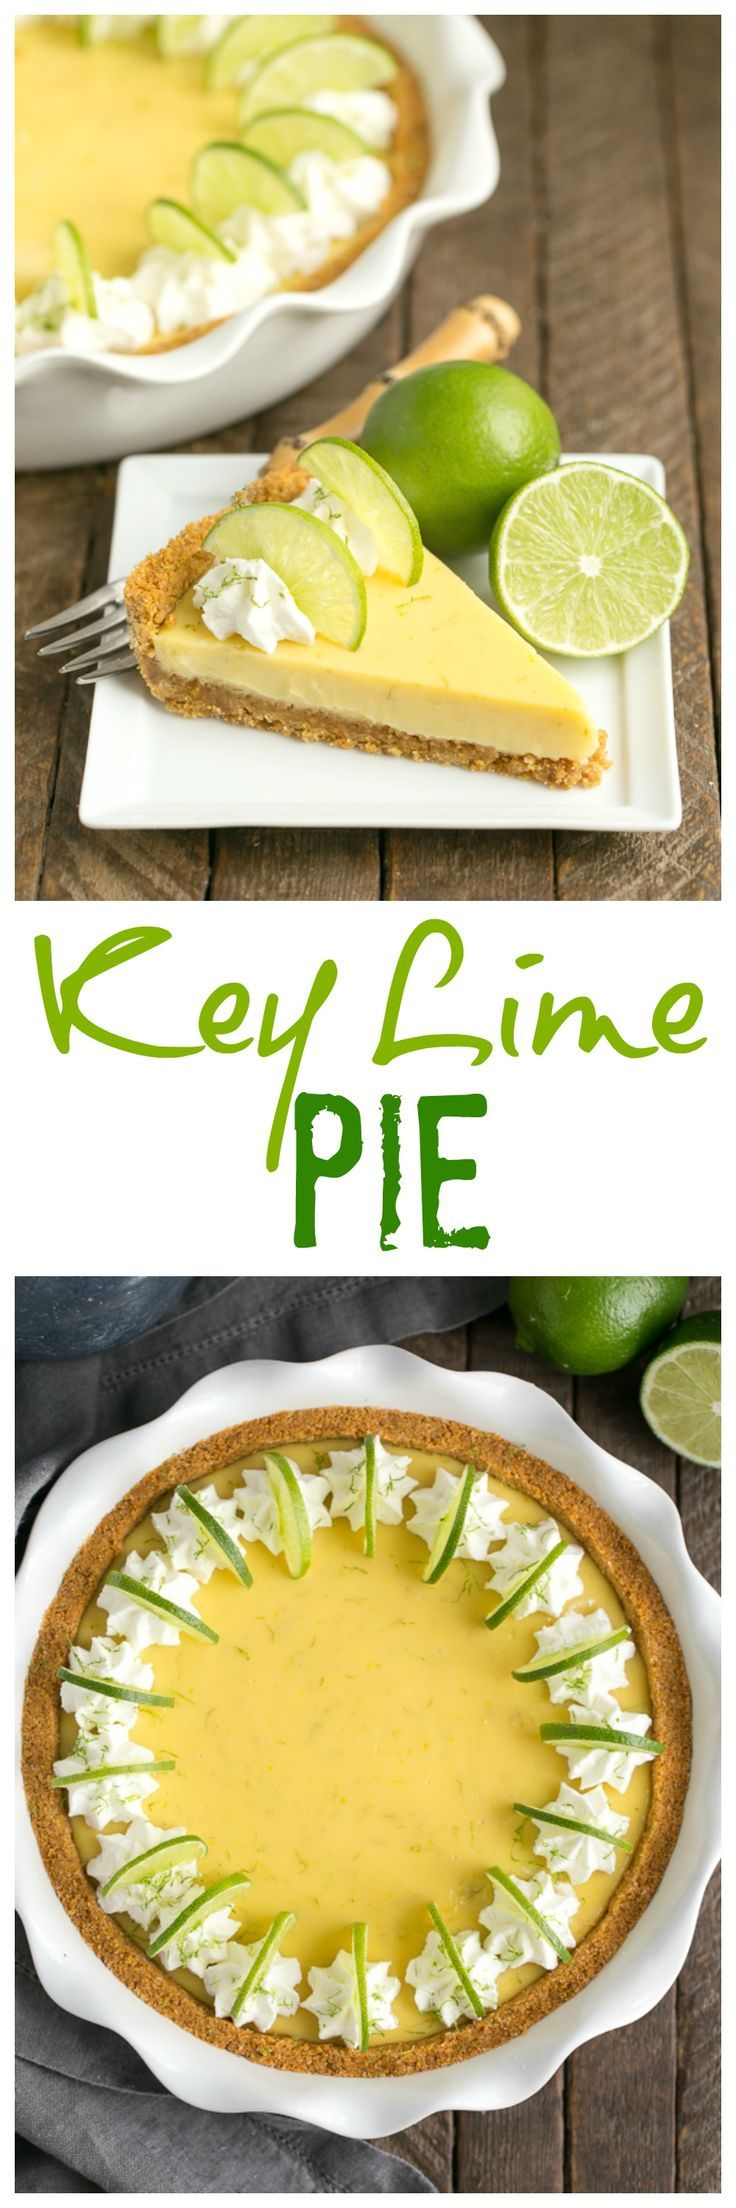 Key Lime Pie with Graham Cracker Crust   A classic recipe with a zesty punch of citrus! @lizzydo